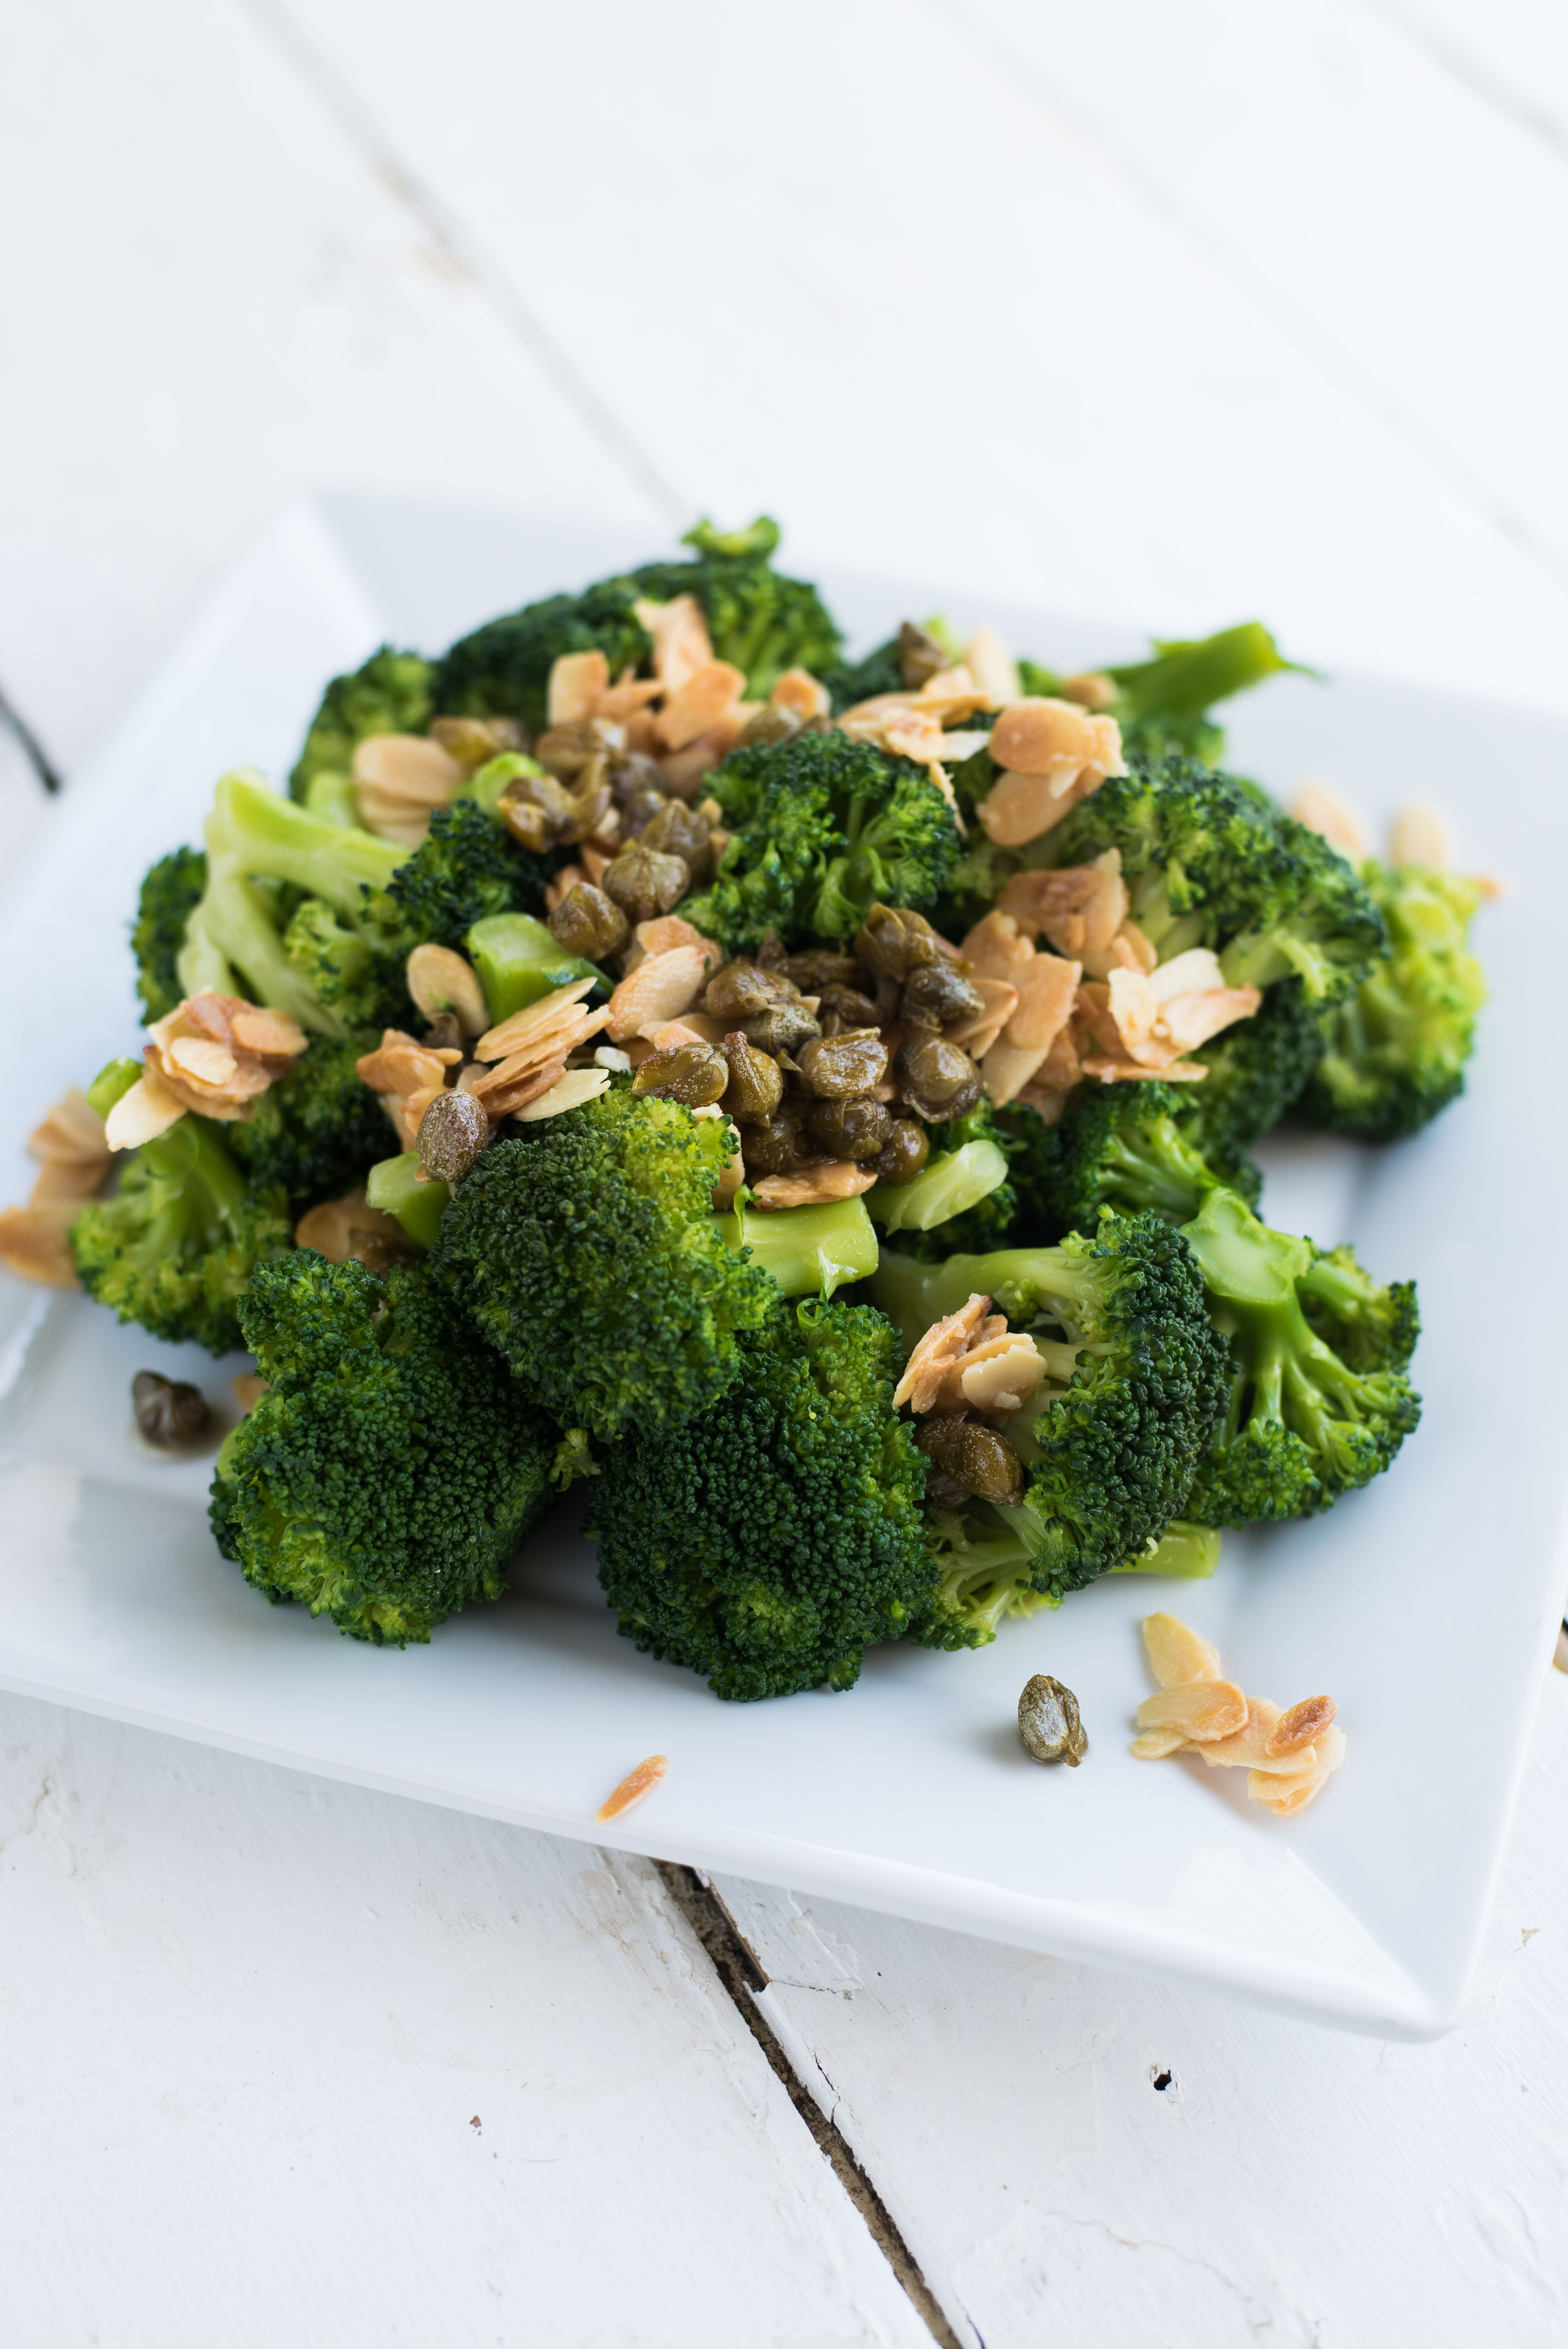 Broccoli with Almonds and Capers